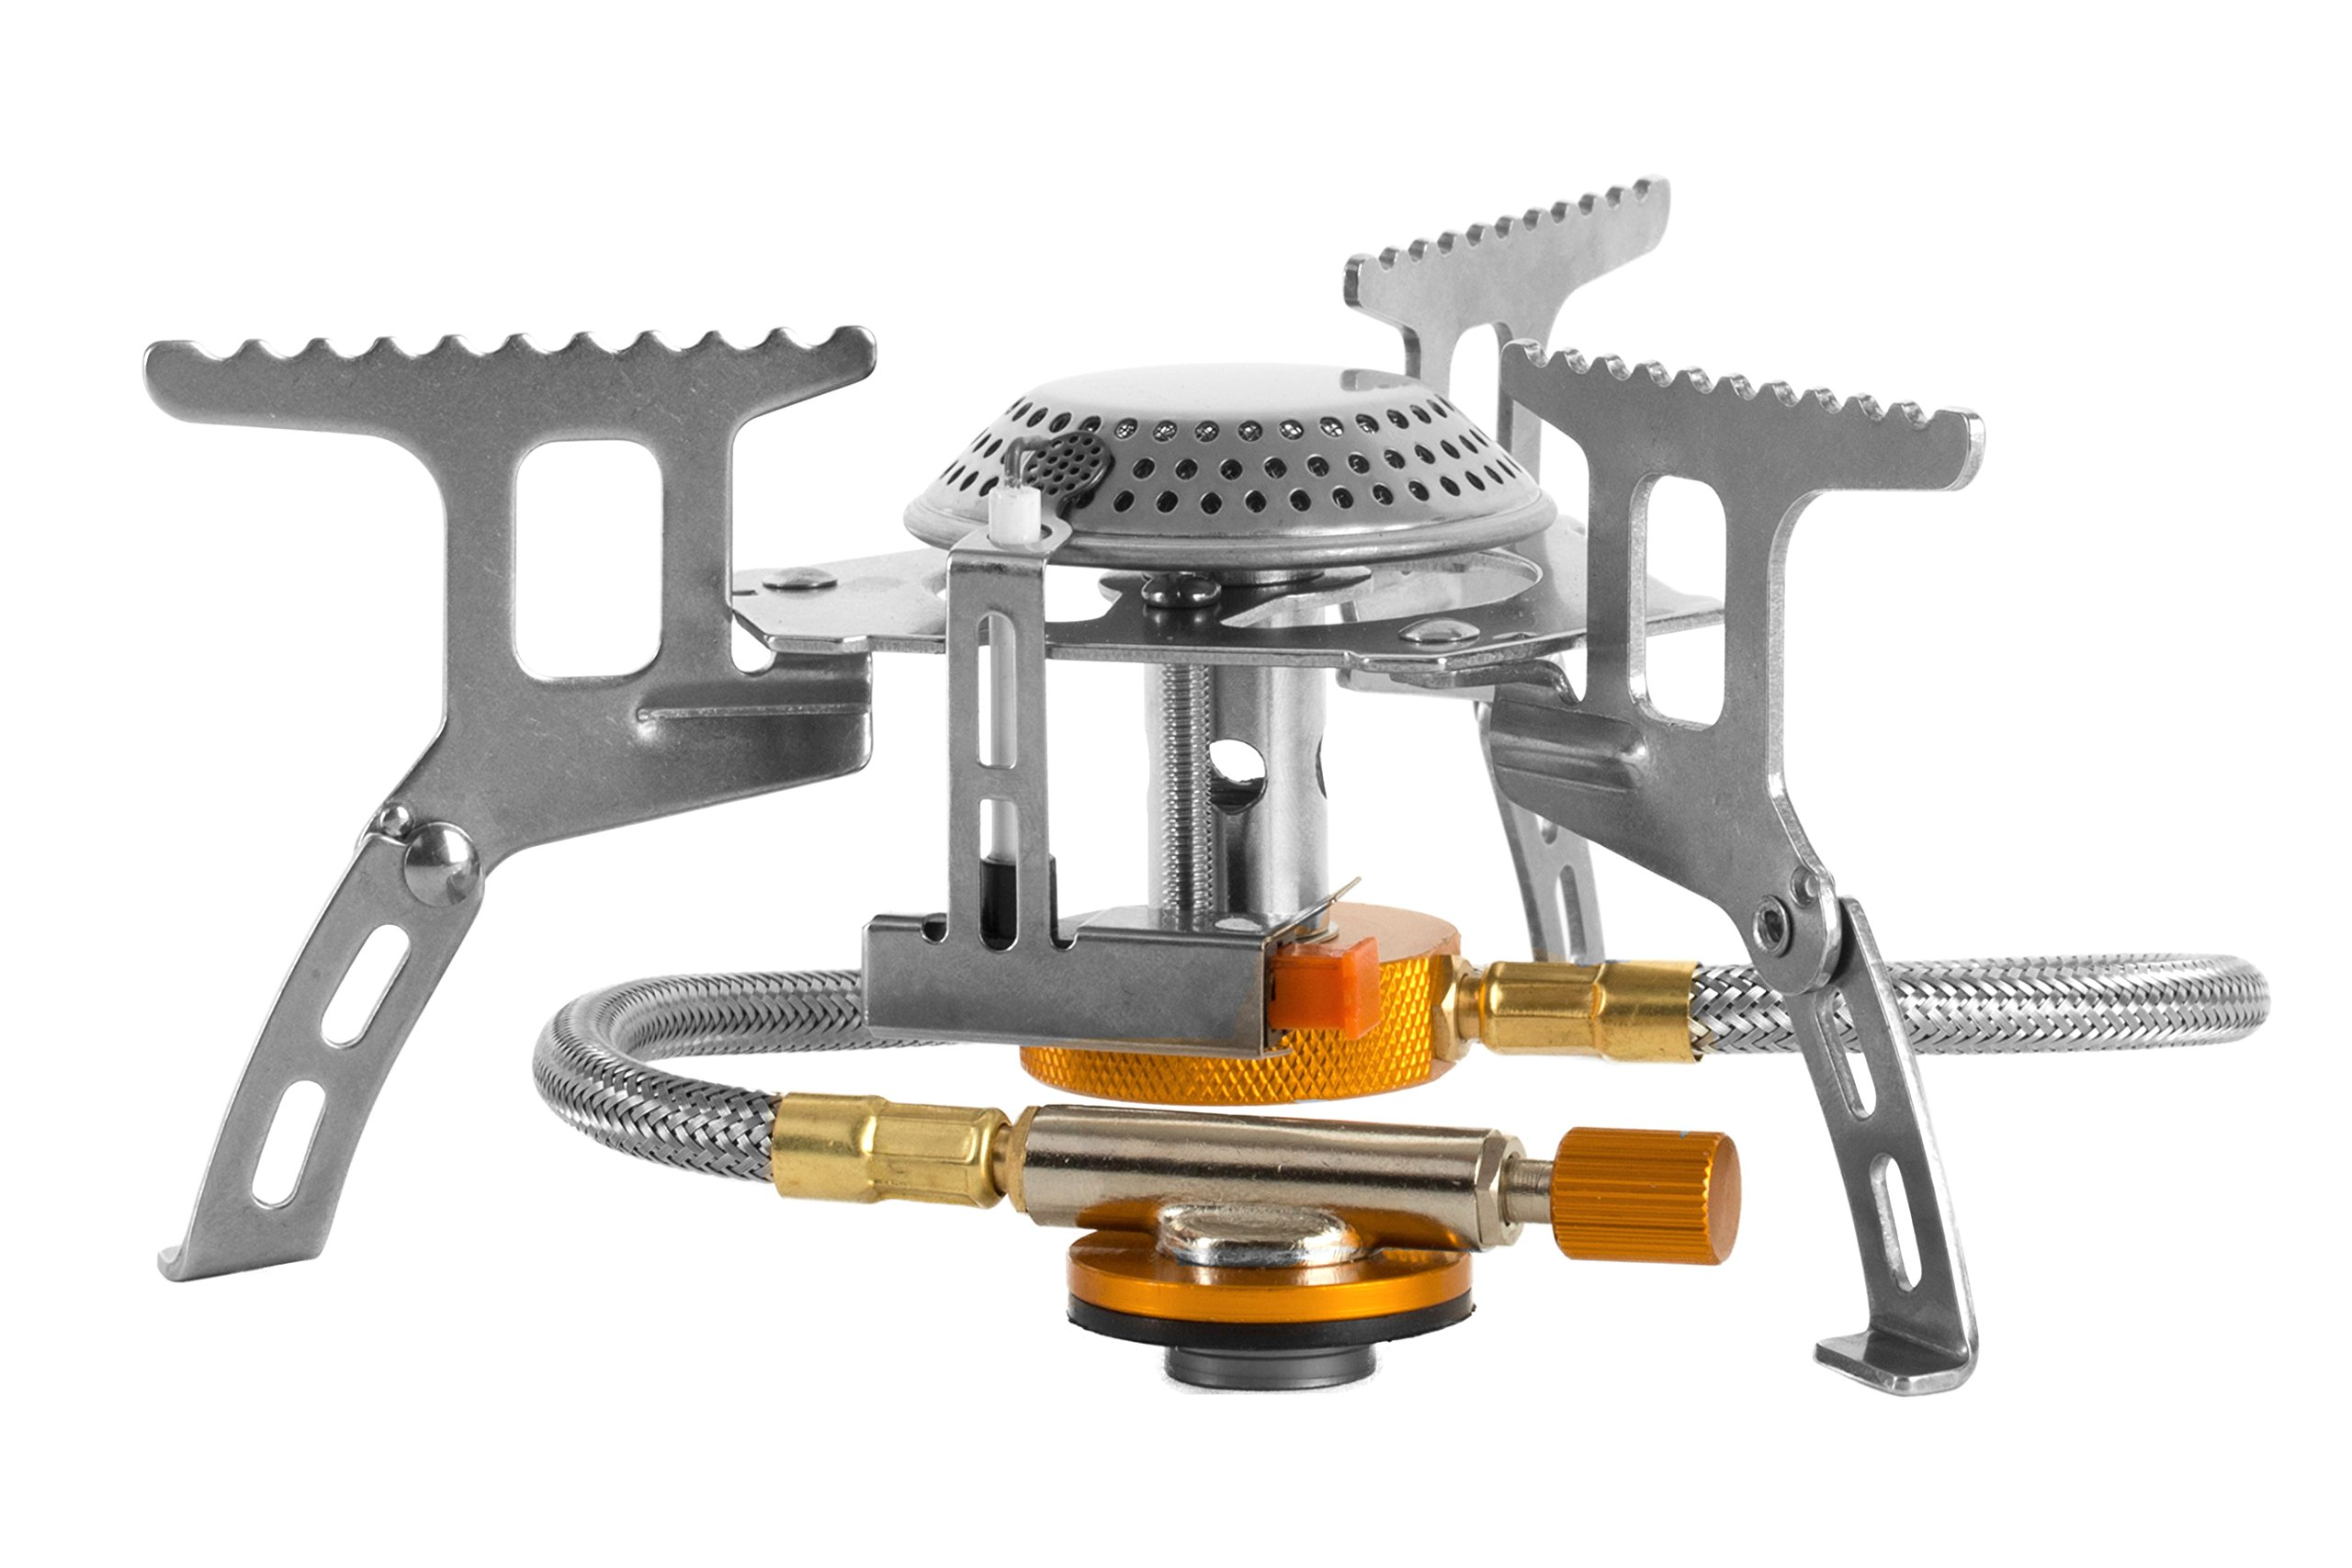 Ultralight Collapsible Camping Stove with Adjustable Windproof Flame and 3500W Ignition Spark - Includes Travel Case for Backpacking Picnics Sporting Mountaineering BBQ's Outdoor Festivities